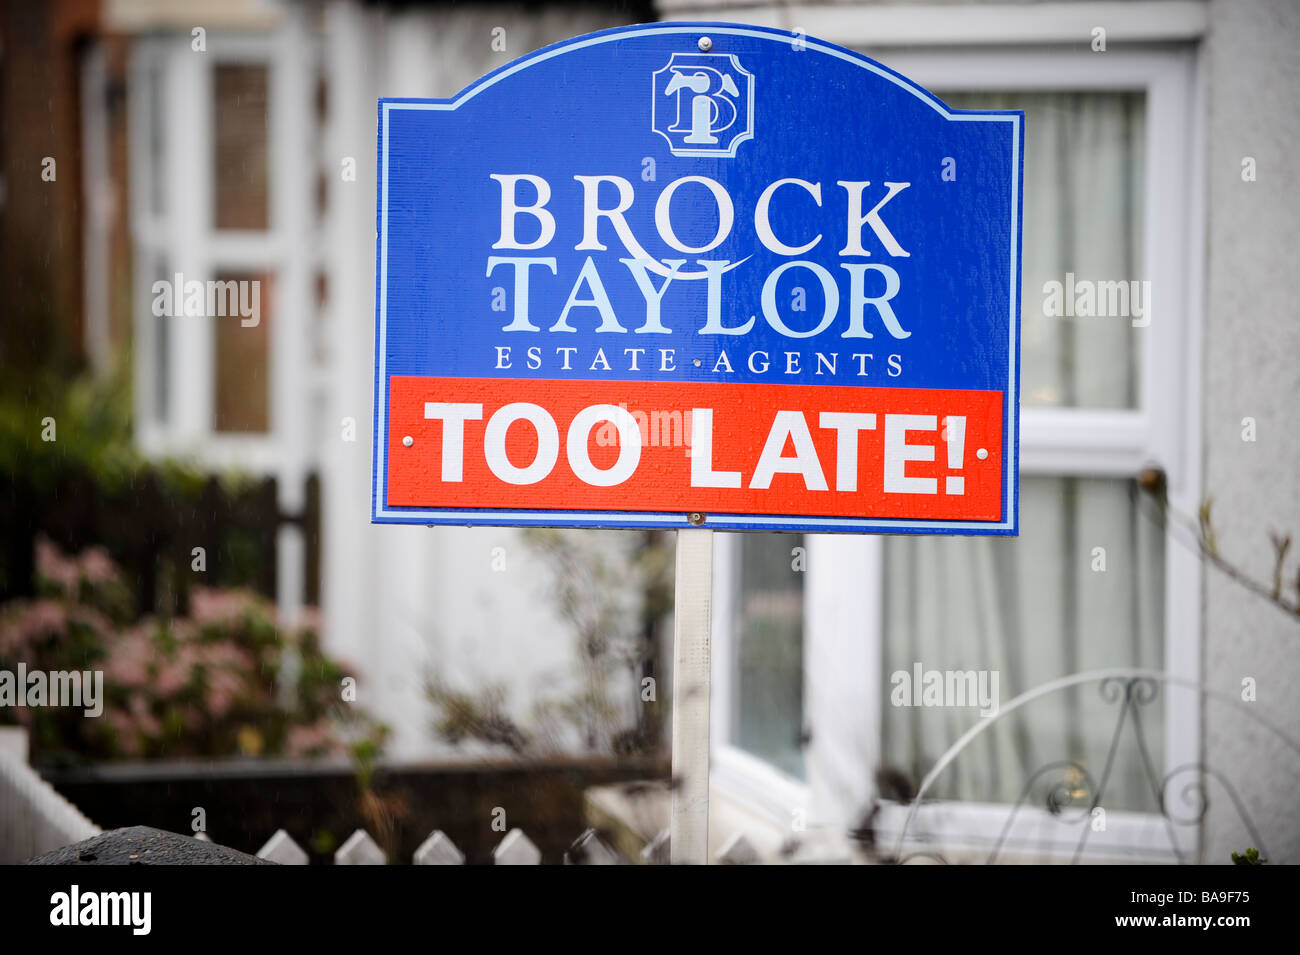 House buying: a UK estate agent in West Sussex uses the phrase 'too late' instead of sold on their sold - Stock Image